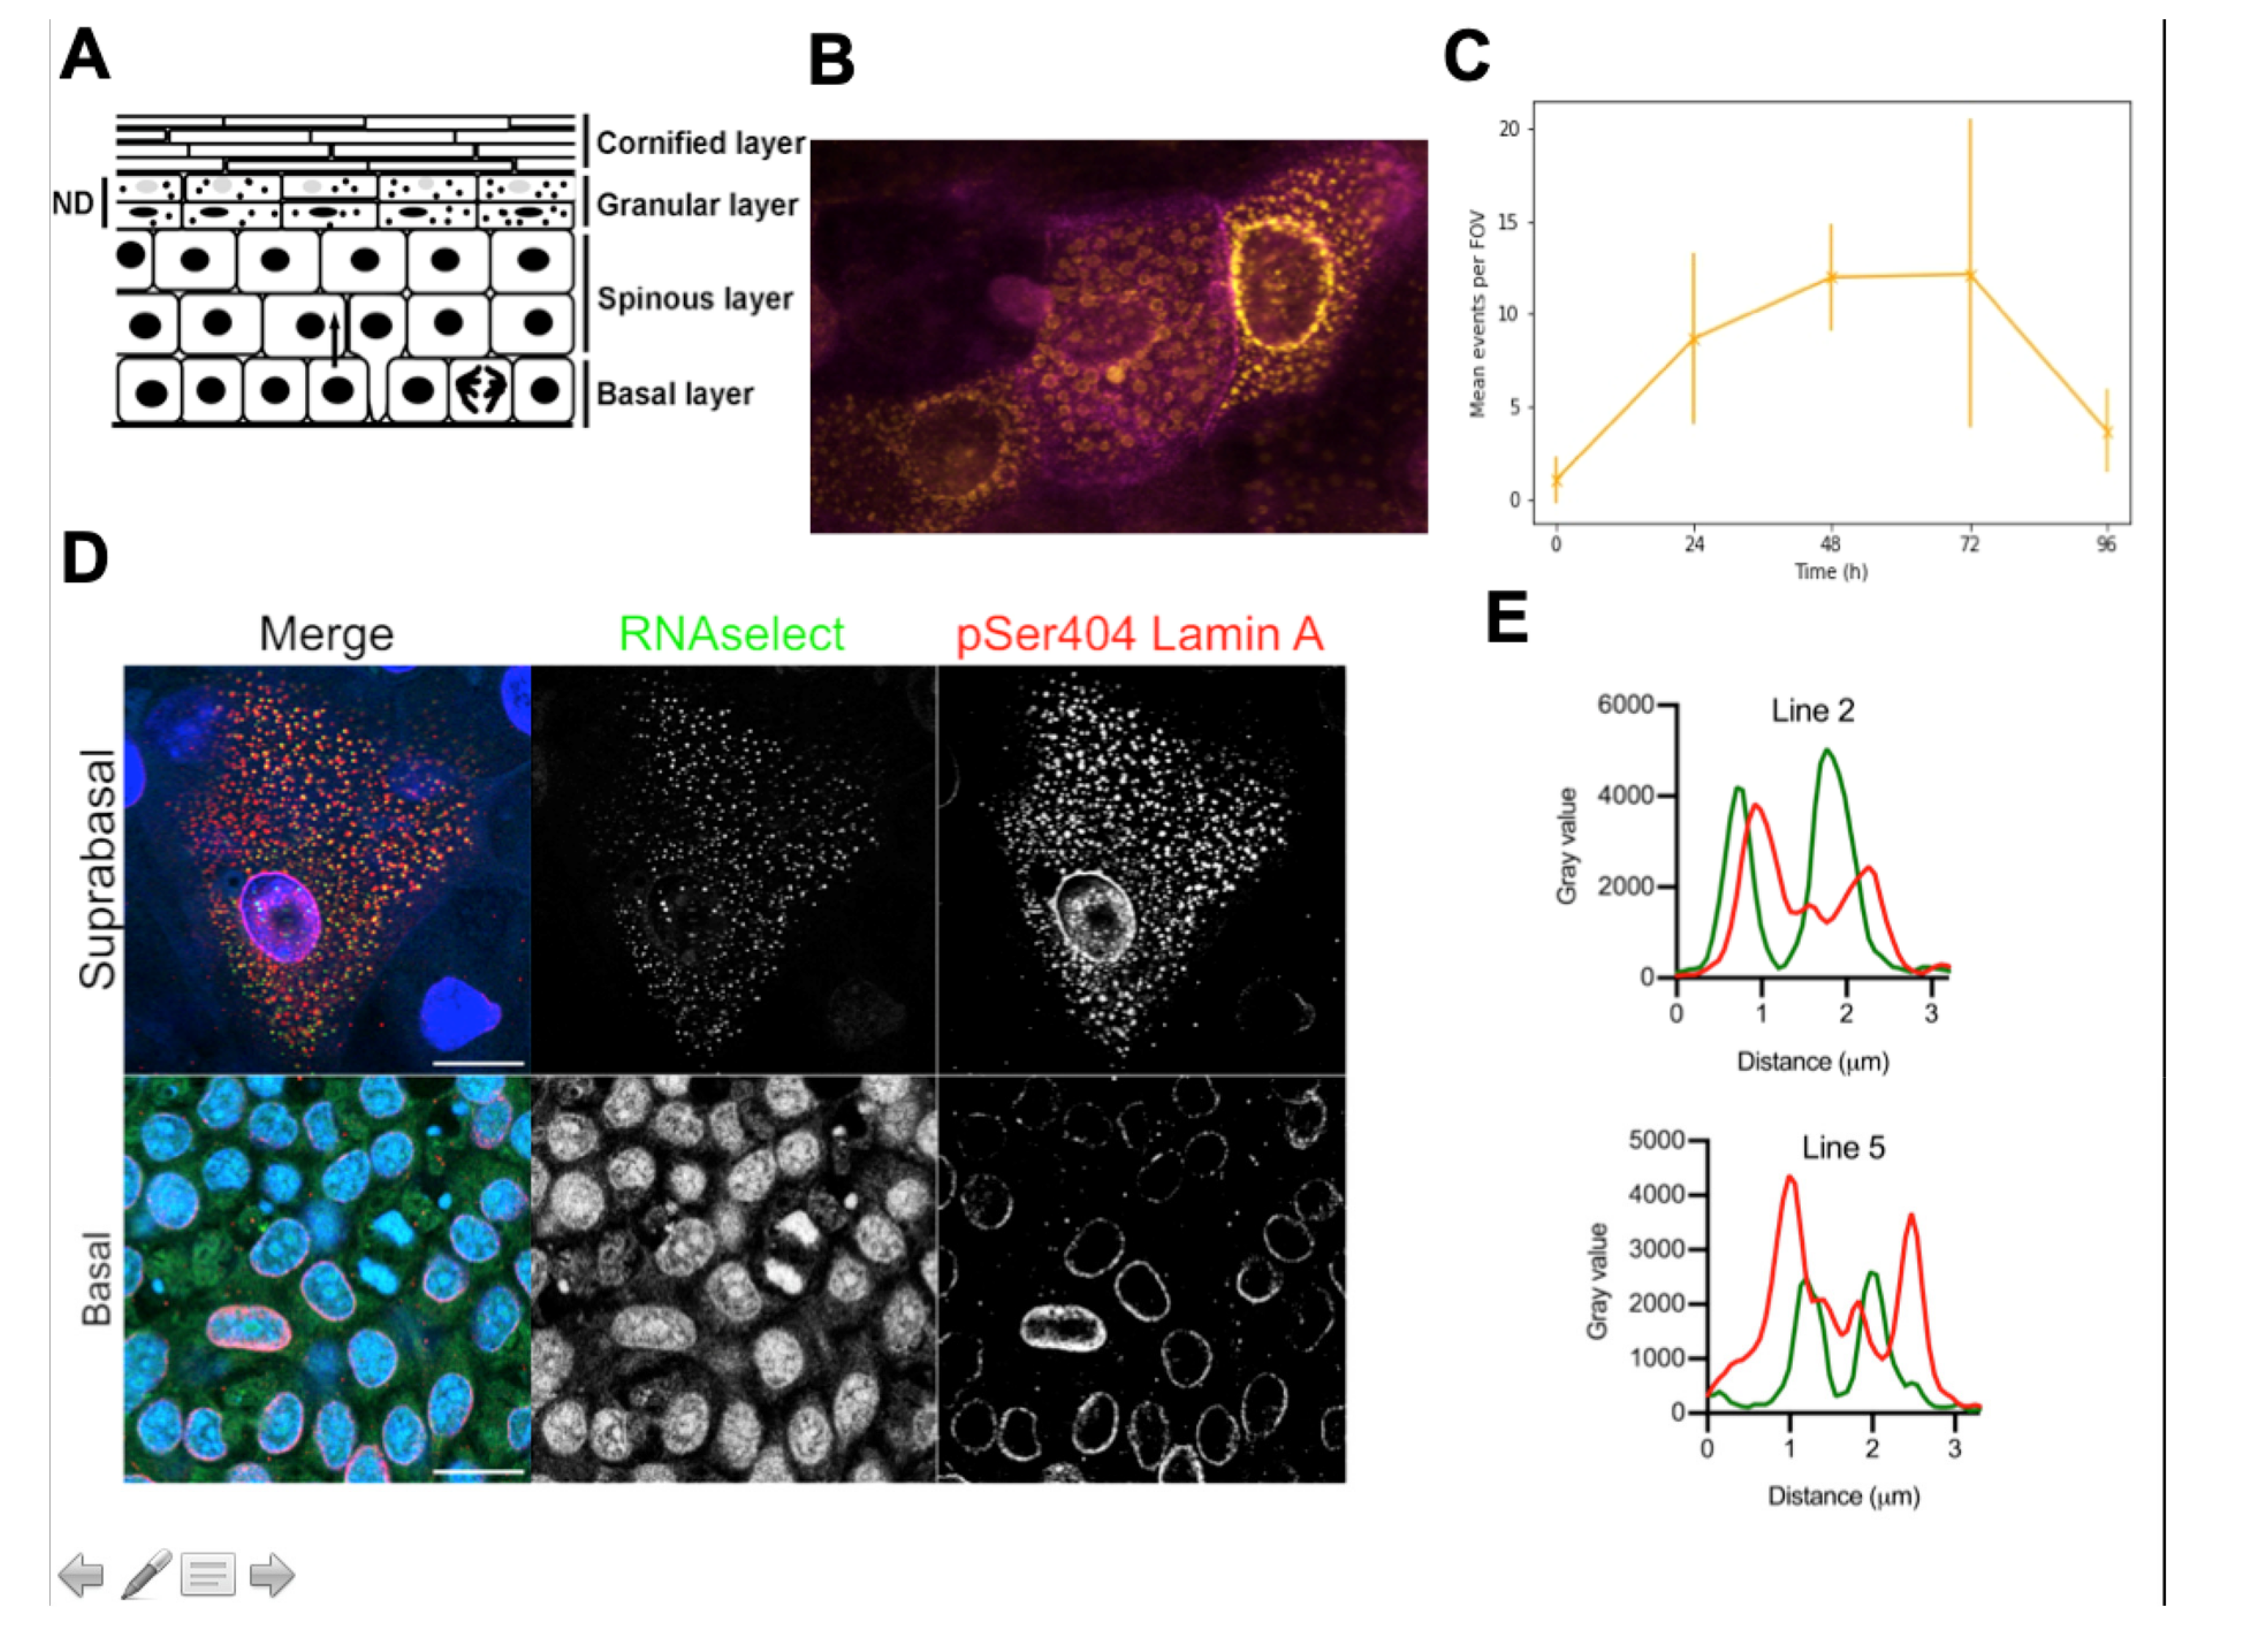 Jdb Free Full Text Perspective Controlling Epidermal Terminal Differentiation With Transcriptional Bursting And Rna Bodies Html View lawrence sonntag's profile on linkedin, the world's largest professional community. epidermal terminal differentiation